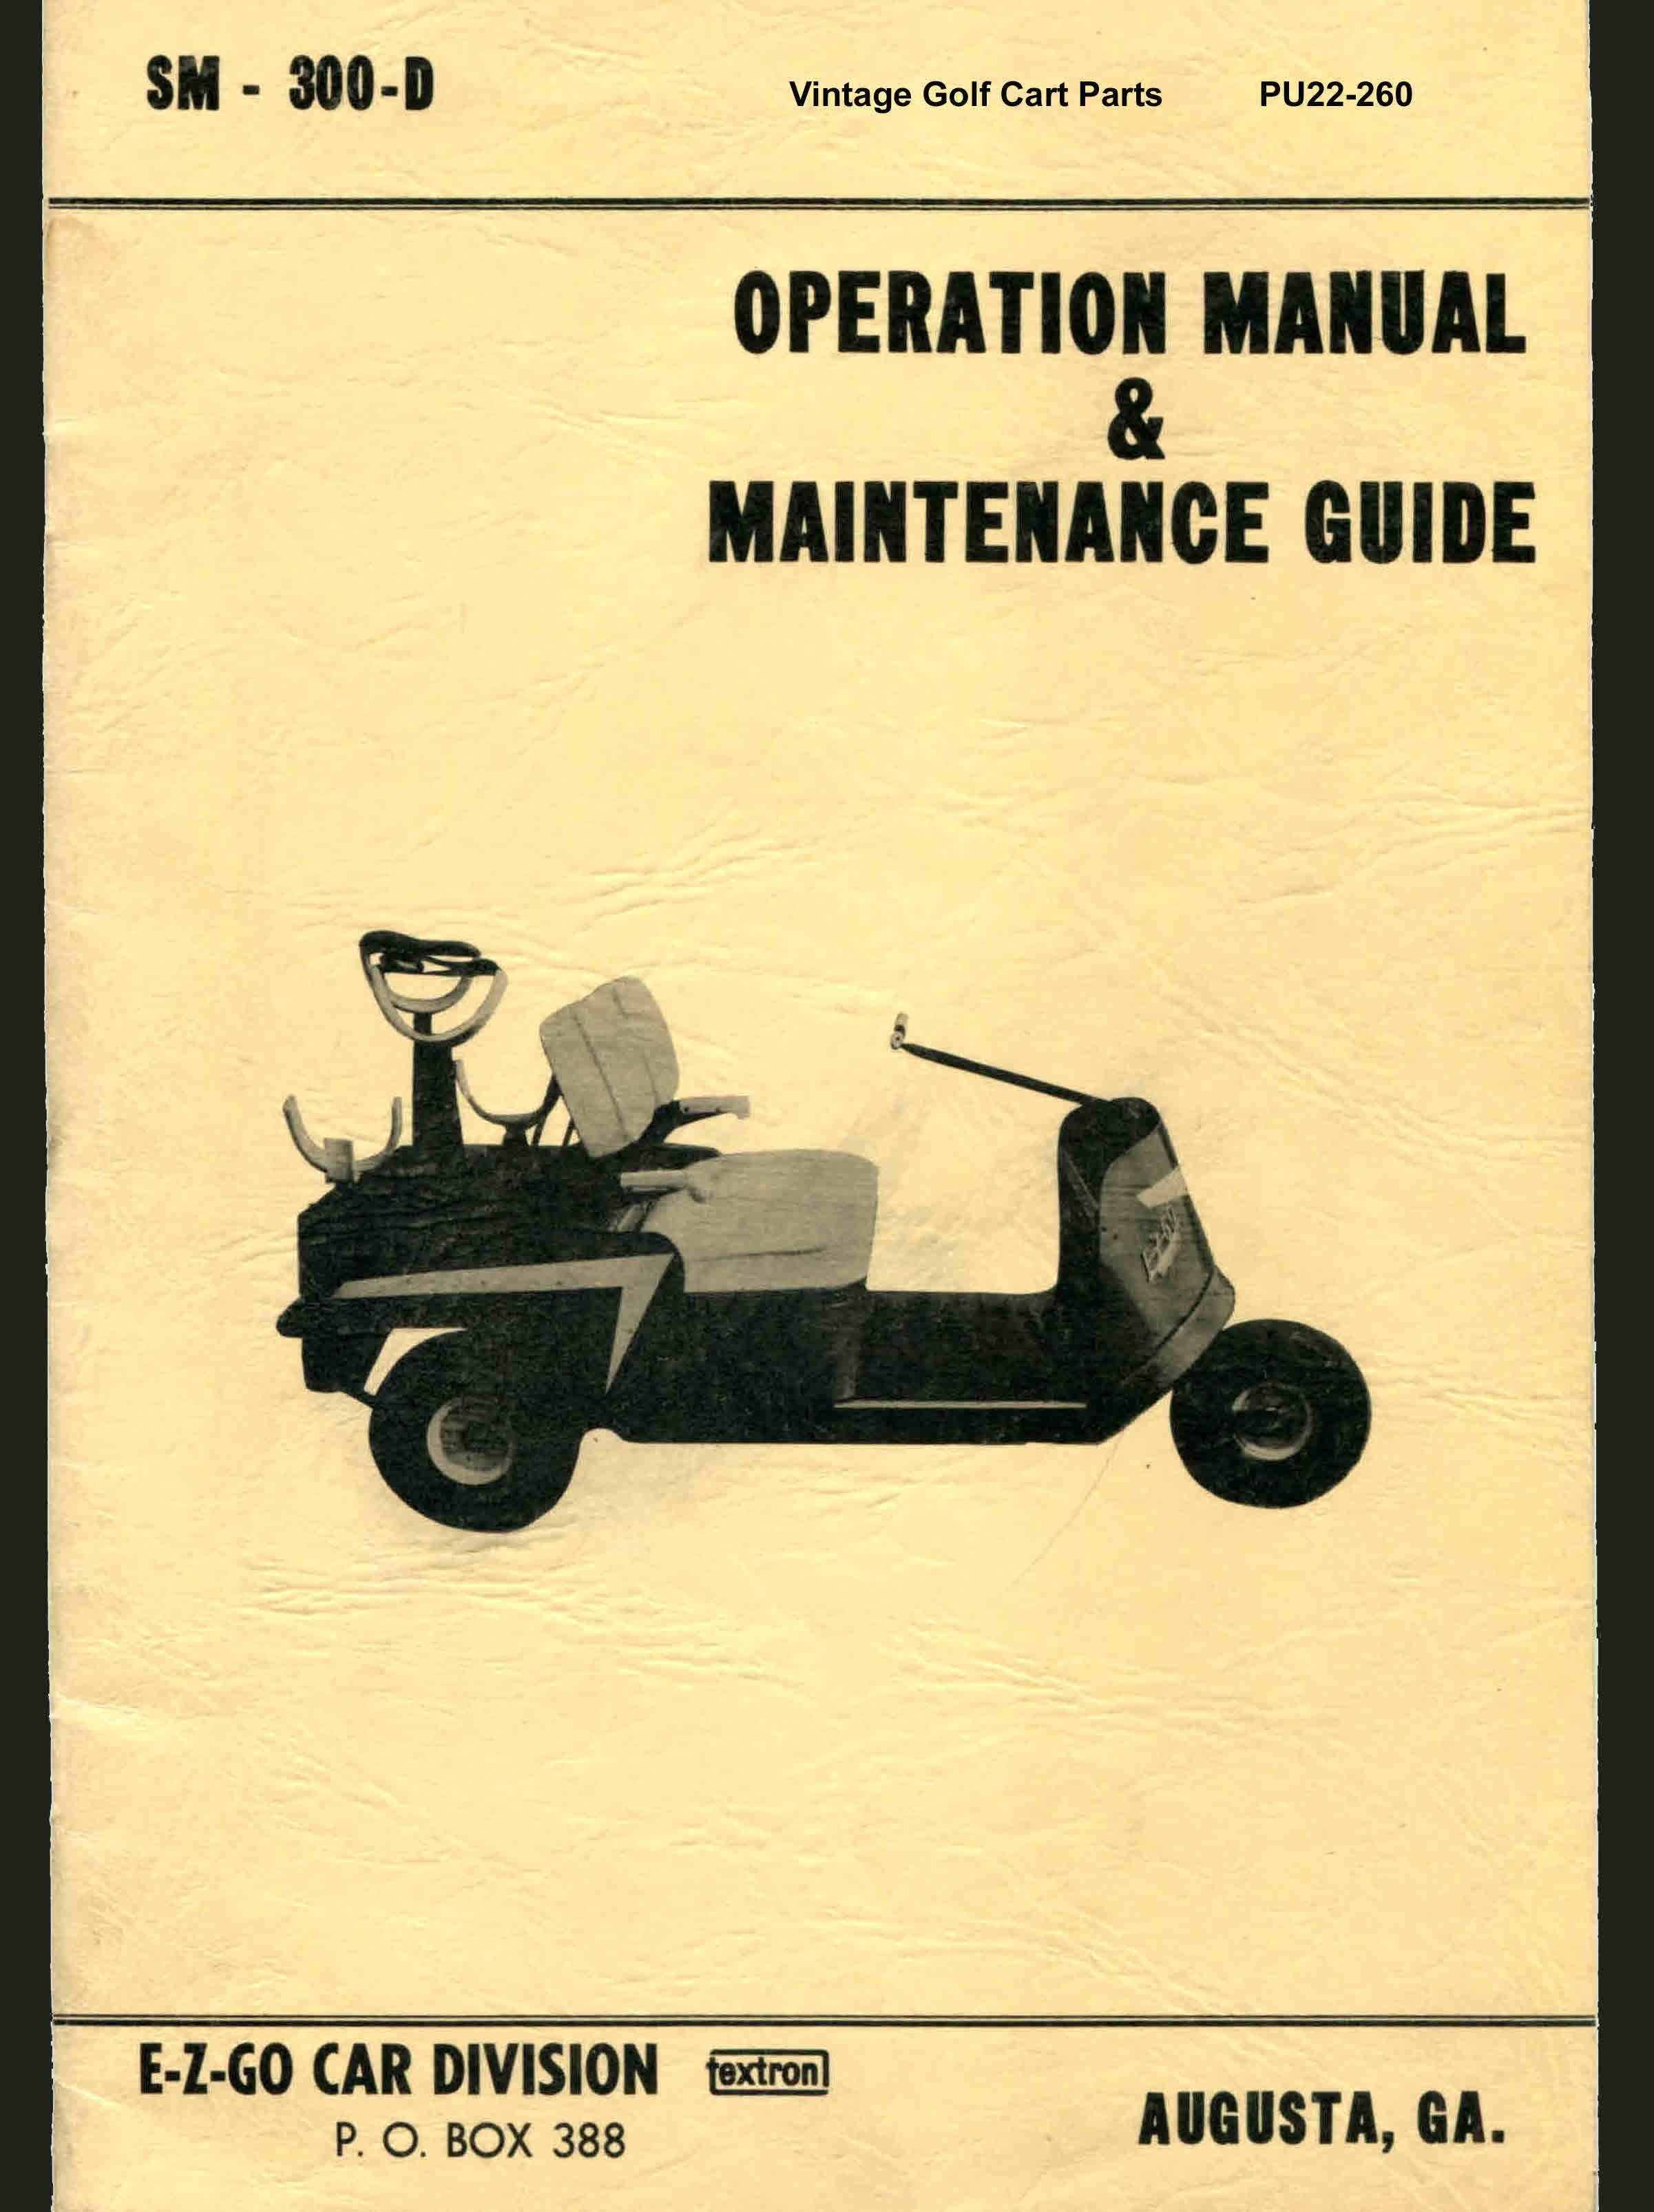 Service Manuals, Electric - Vintage Golf Cart Parts Inc. on